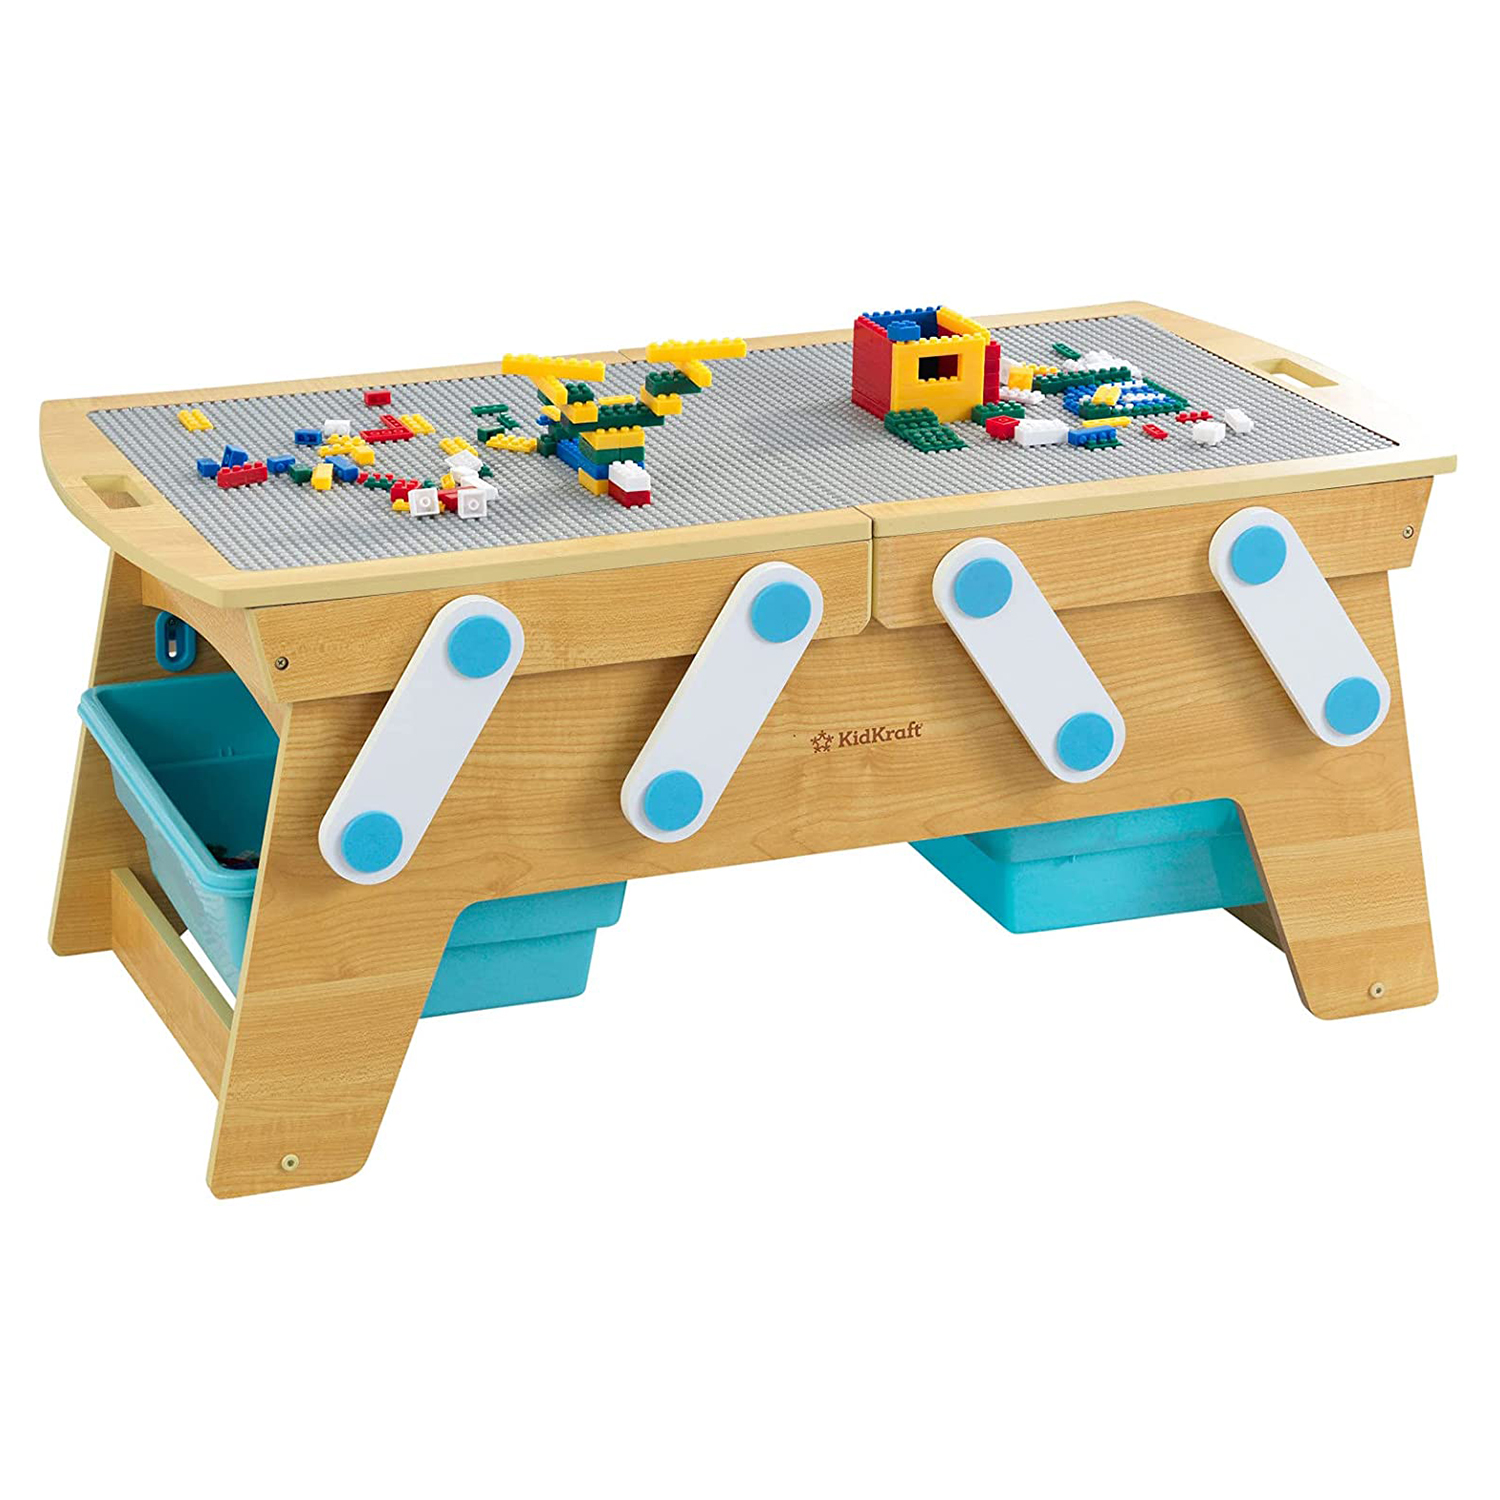 Best Lego Table With Storage for Sibling Play: KidKraft Building Bricks Play and Store Table